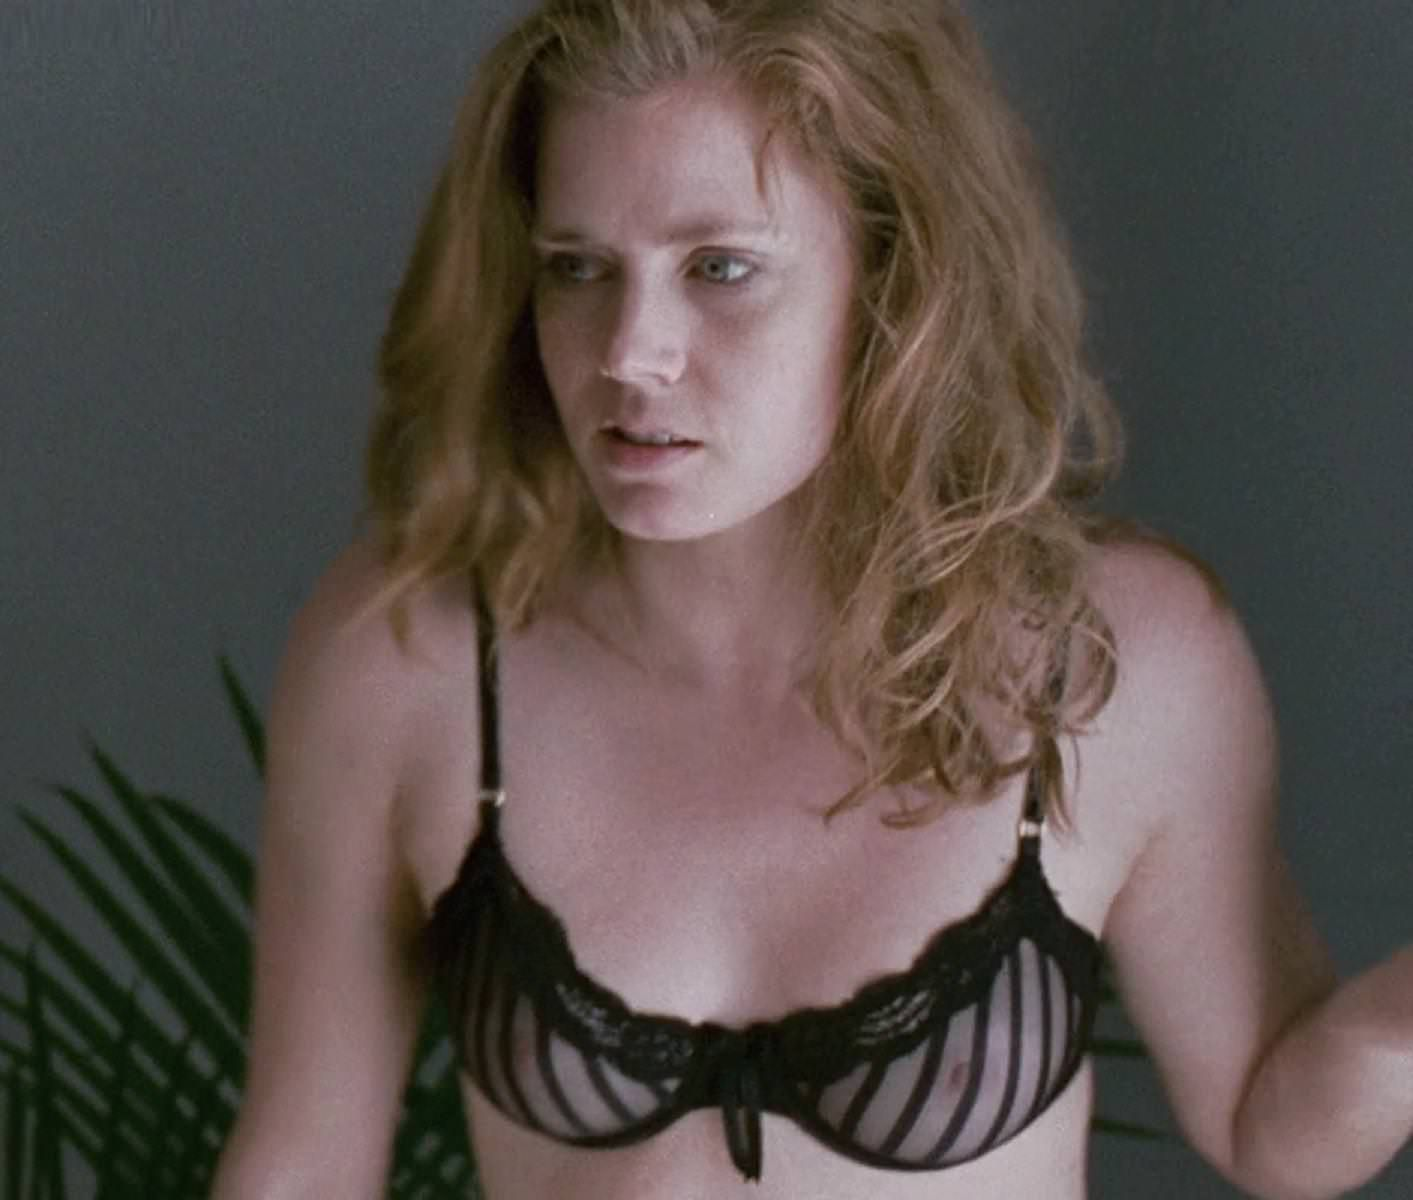 Amy Adams From The Fighter Nude With Tousled Hair In A Sheer Seethrough Transparent Lace Bra Lingerie Star Of American Hustle Junebug Enchanted